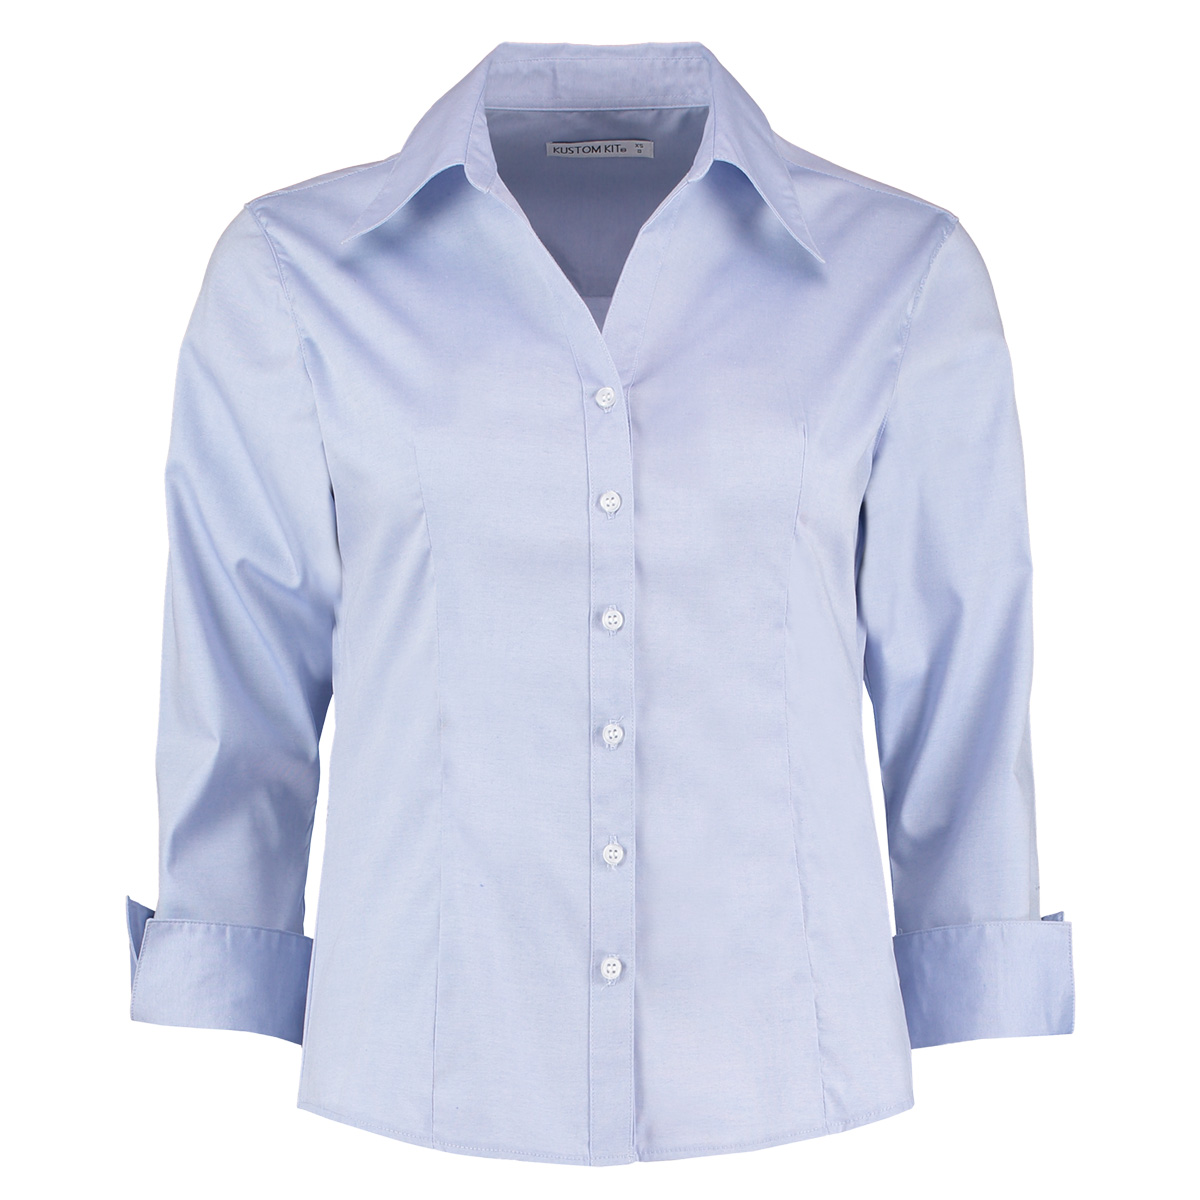 kk710 corporate oxford shirt